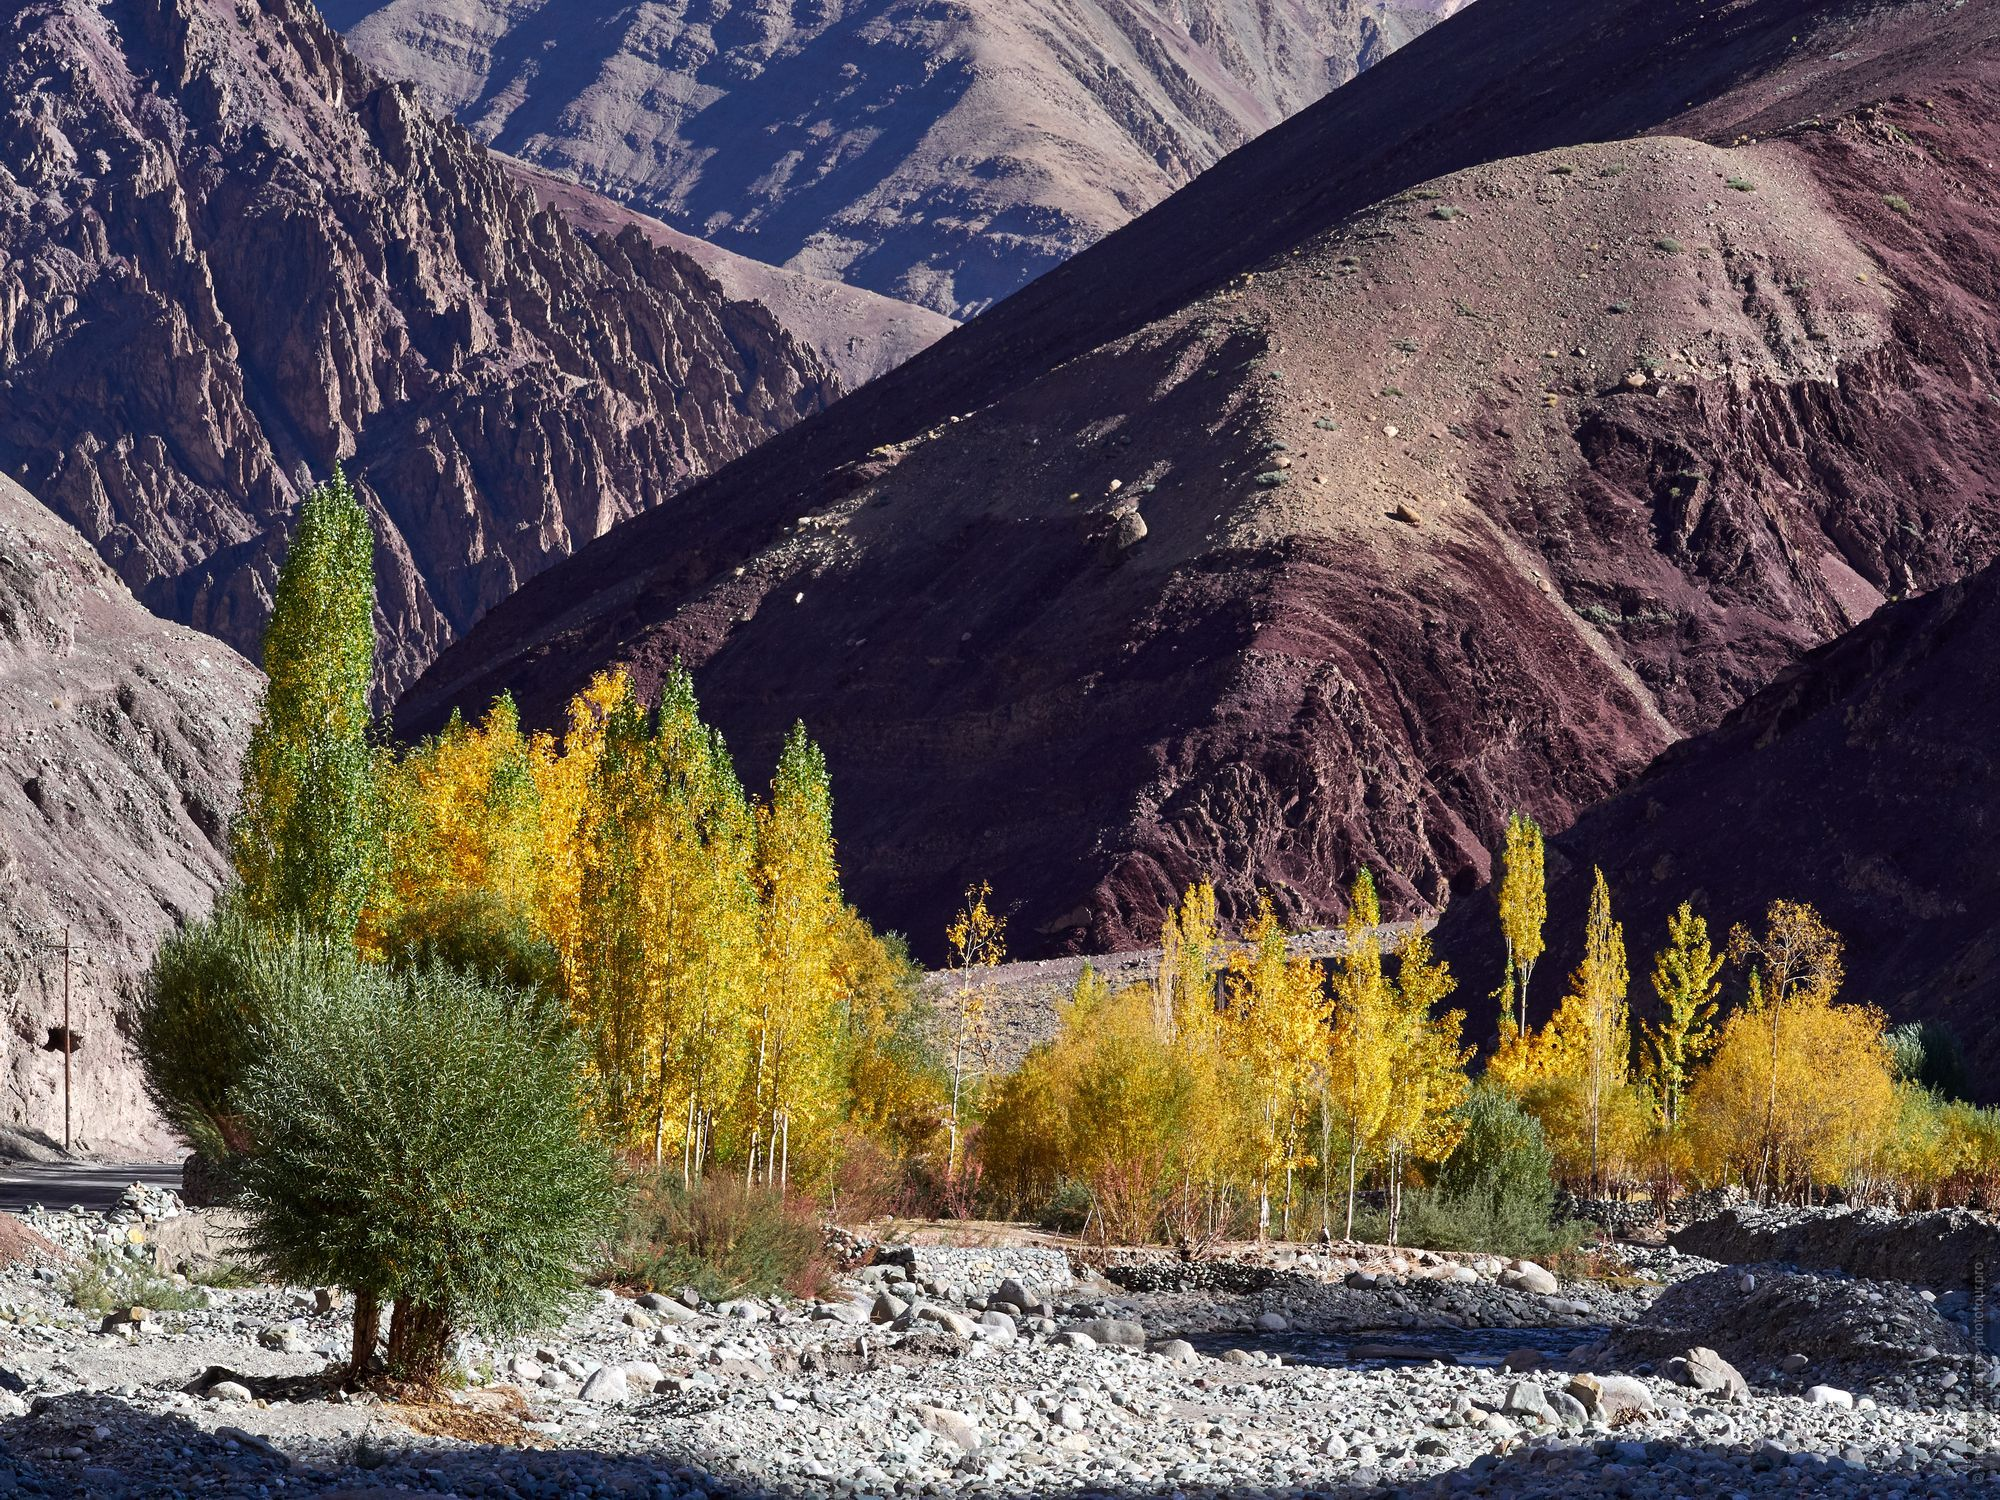 Burgundy Gorge, Ladakh. Tour Legends of Tibet: Ladakh, Lamayuru, Da Khan and Nubra, 19.09. - 28.09.2019.